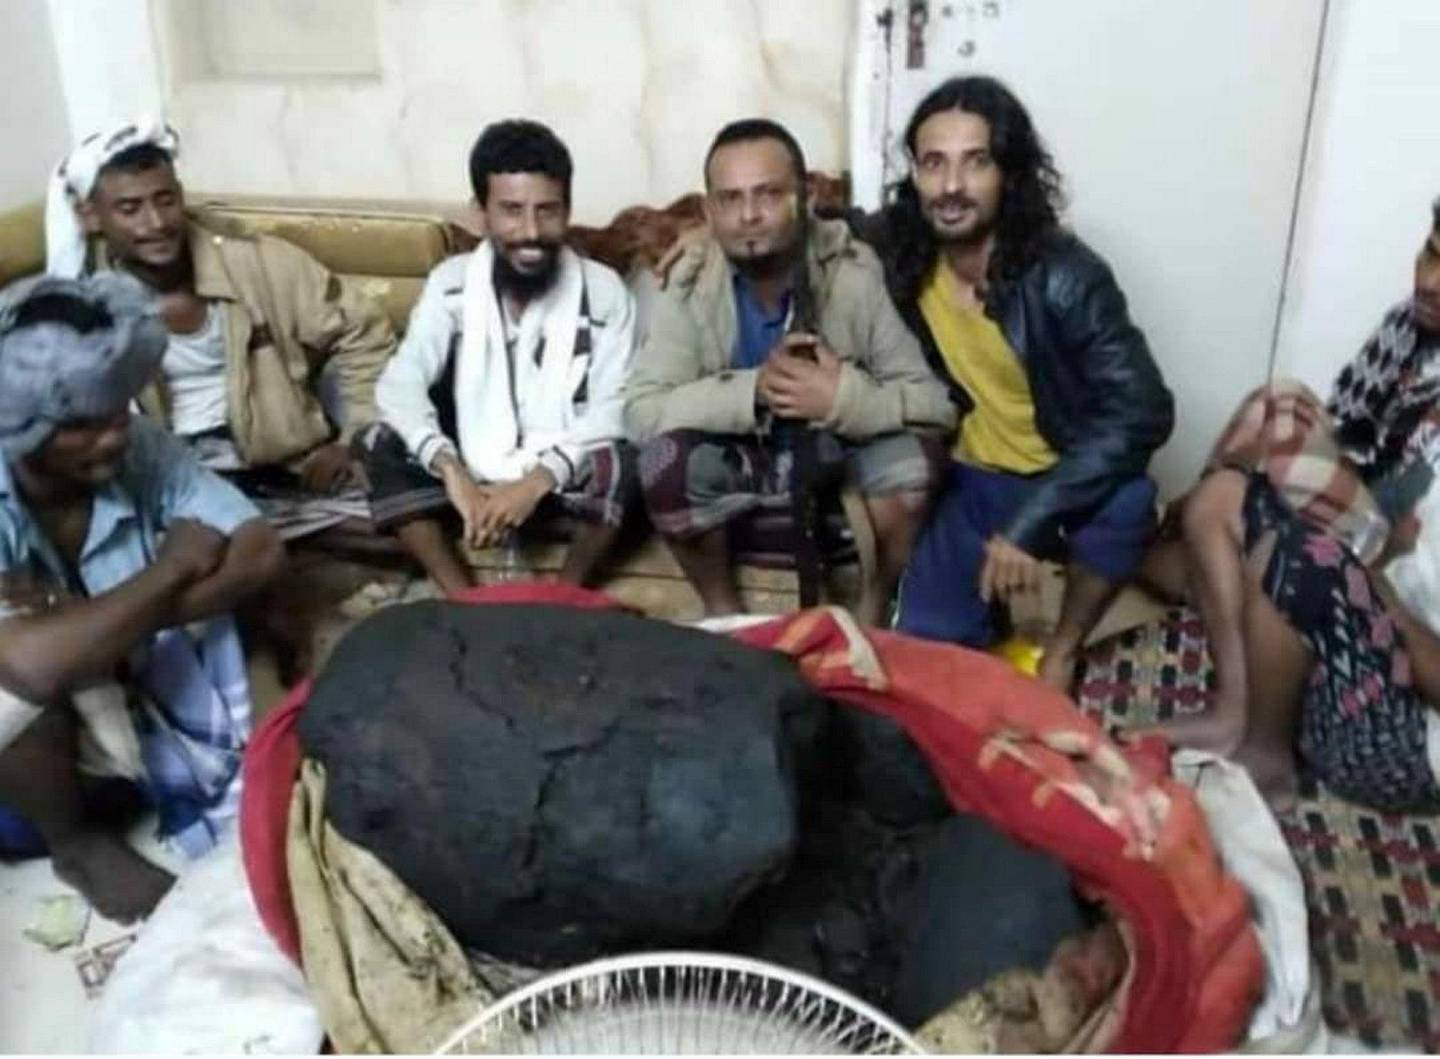 Lucky fishermen in Aden found big whale vomit worth up to billions. Ali Mahmood Mohamed for The National